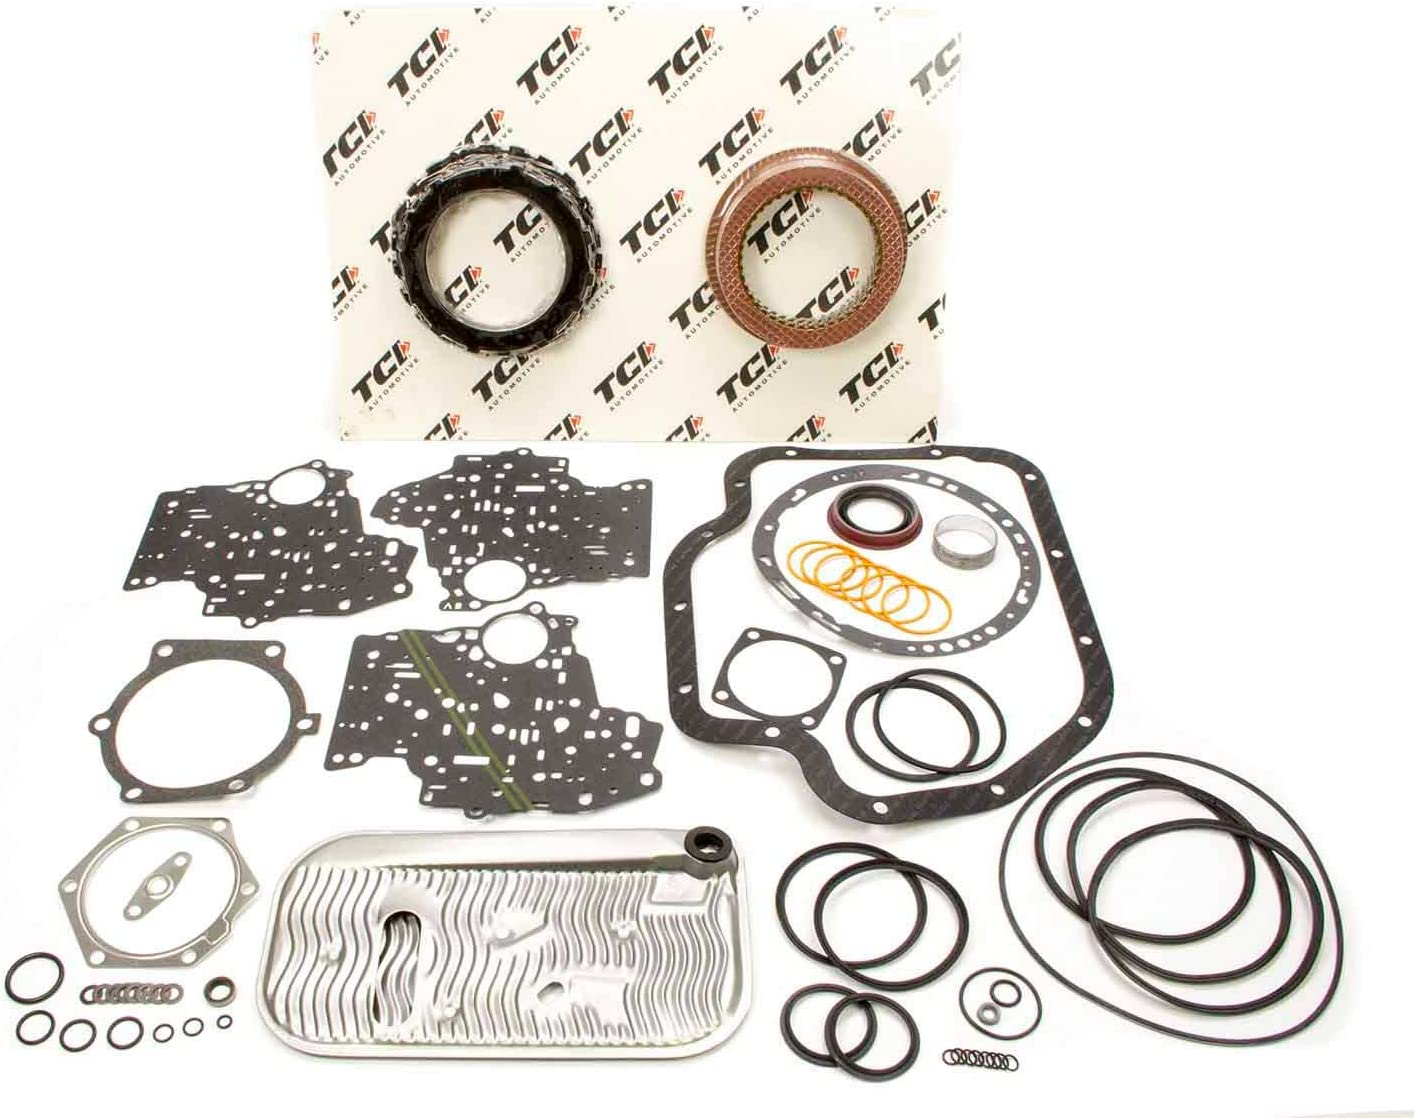 TCI 259015 66-'91 TH400 Ultimate Kit Daily bargain sale Overhaul List price Master Racing